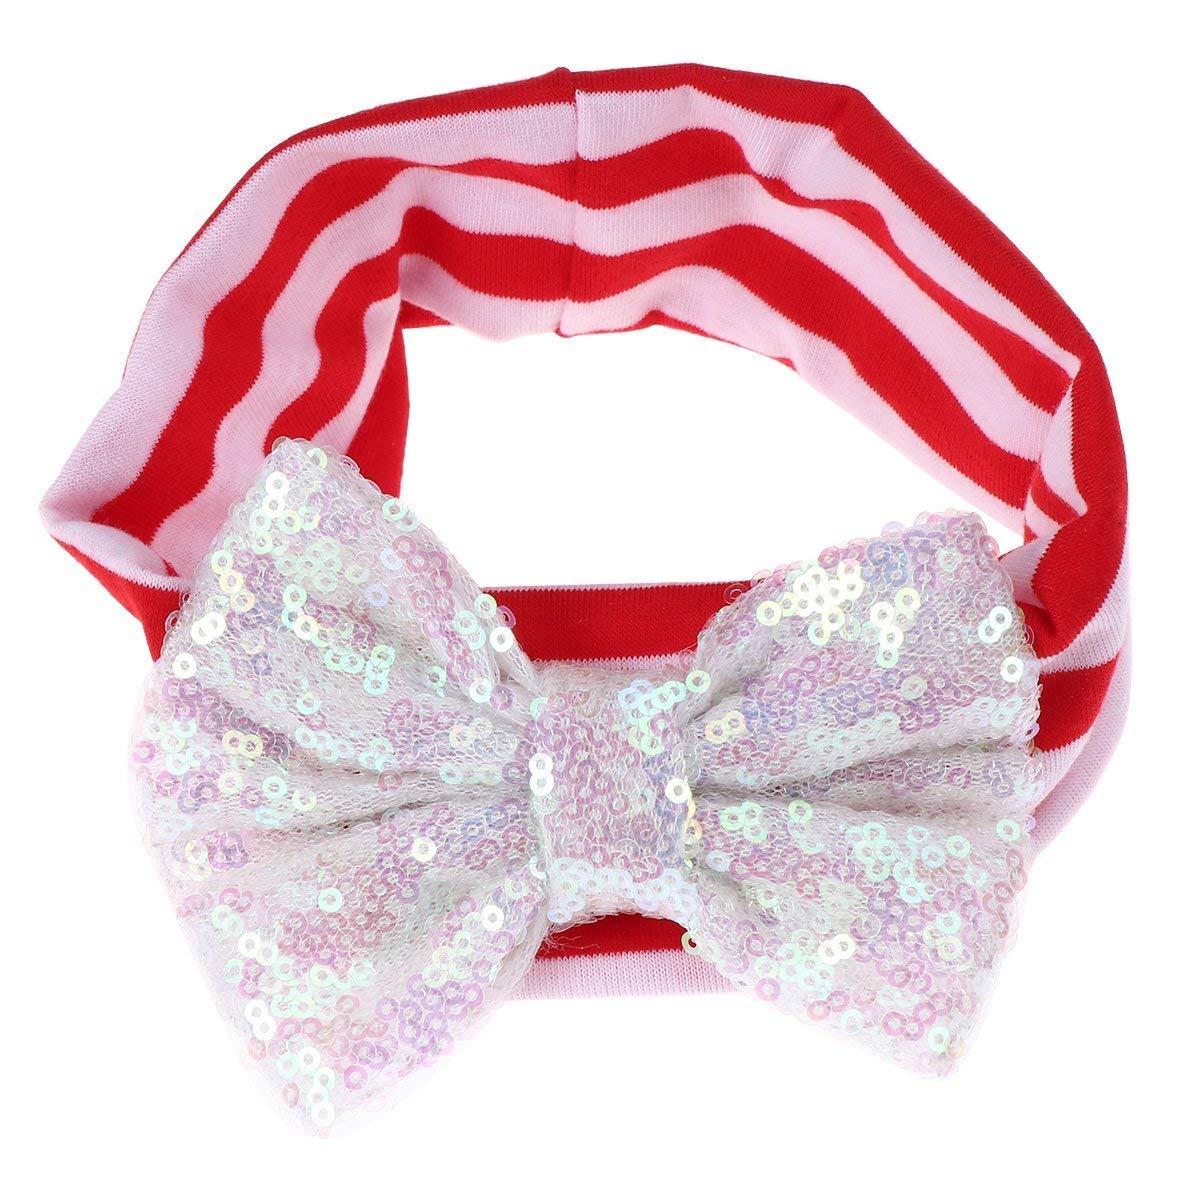 BESTOYARD Stripe Headbands Sequin Bowknot Turban Head Wrap Knotted Hairband for Baby Girl (White + Red White Stripes)